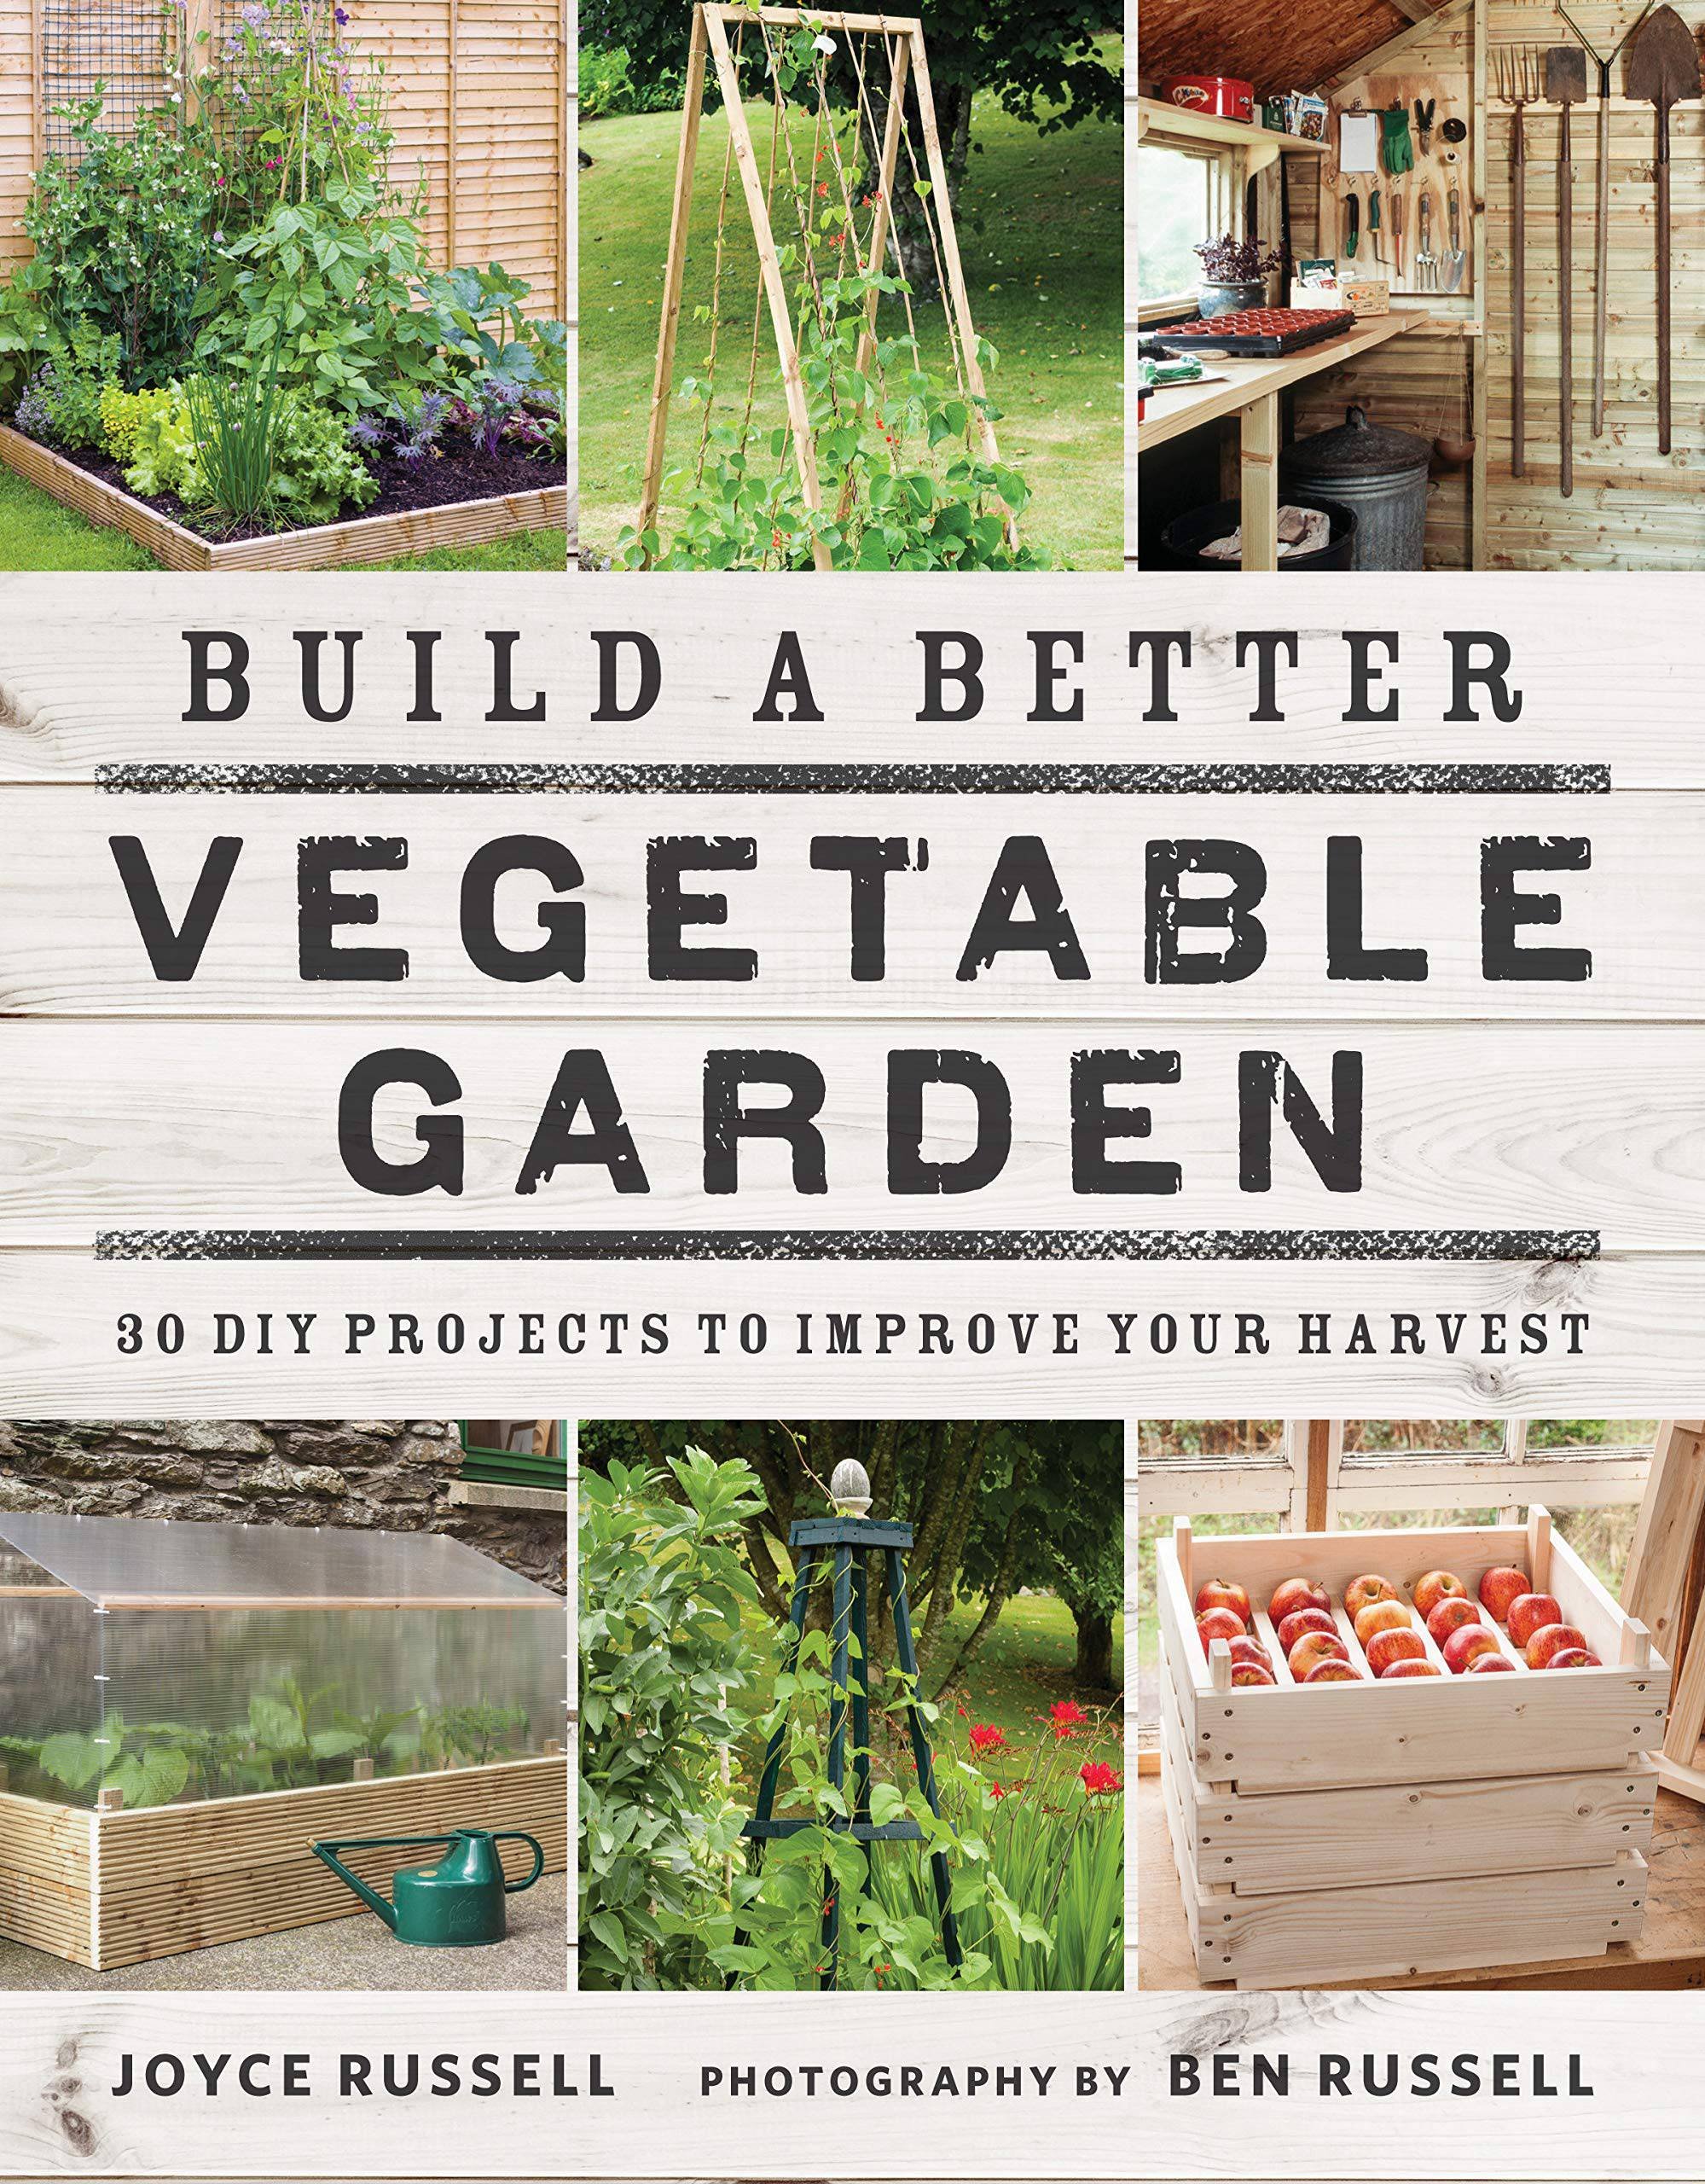 Build a better vegetable garden by Joyce Russell & Ben Russell